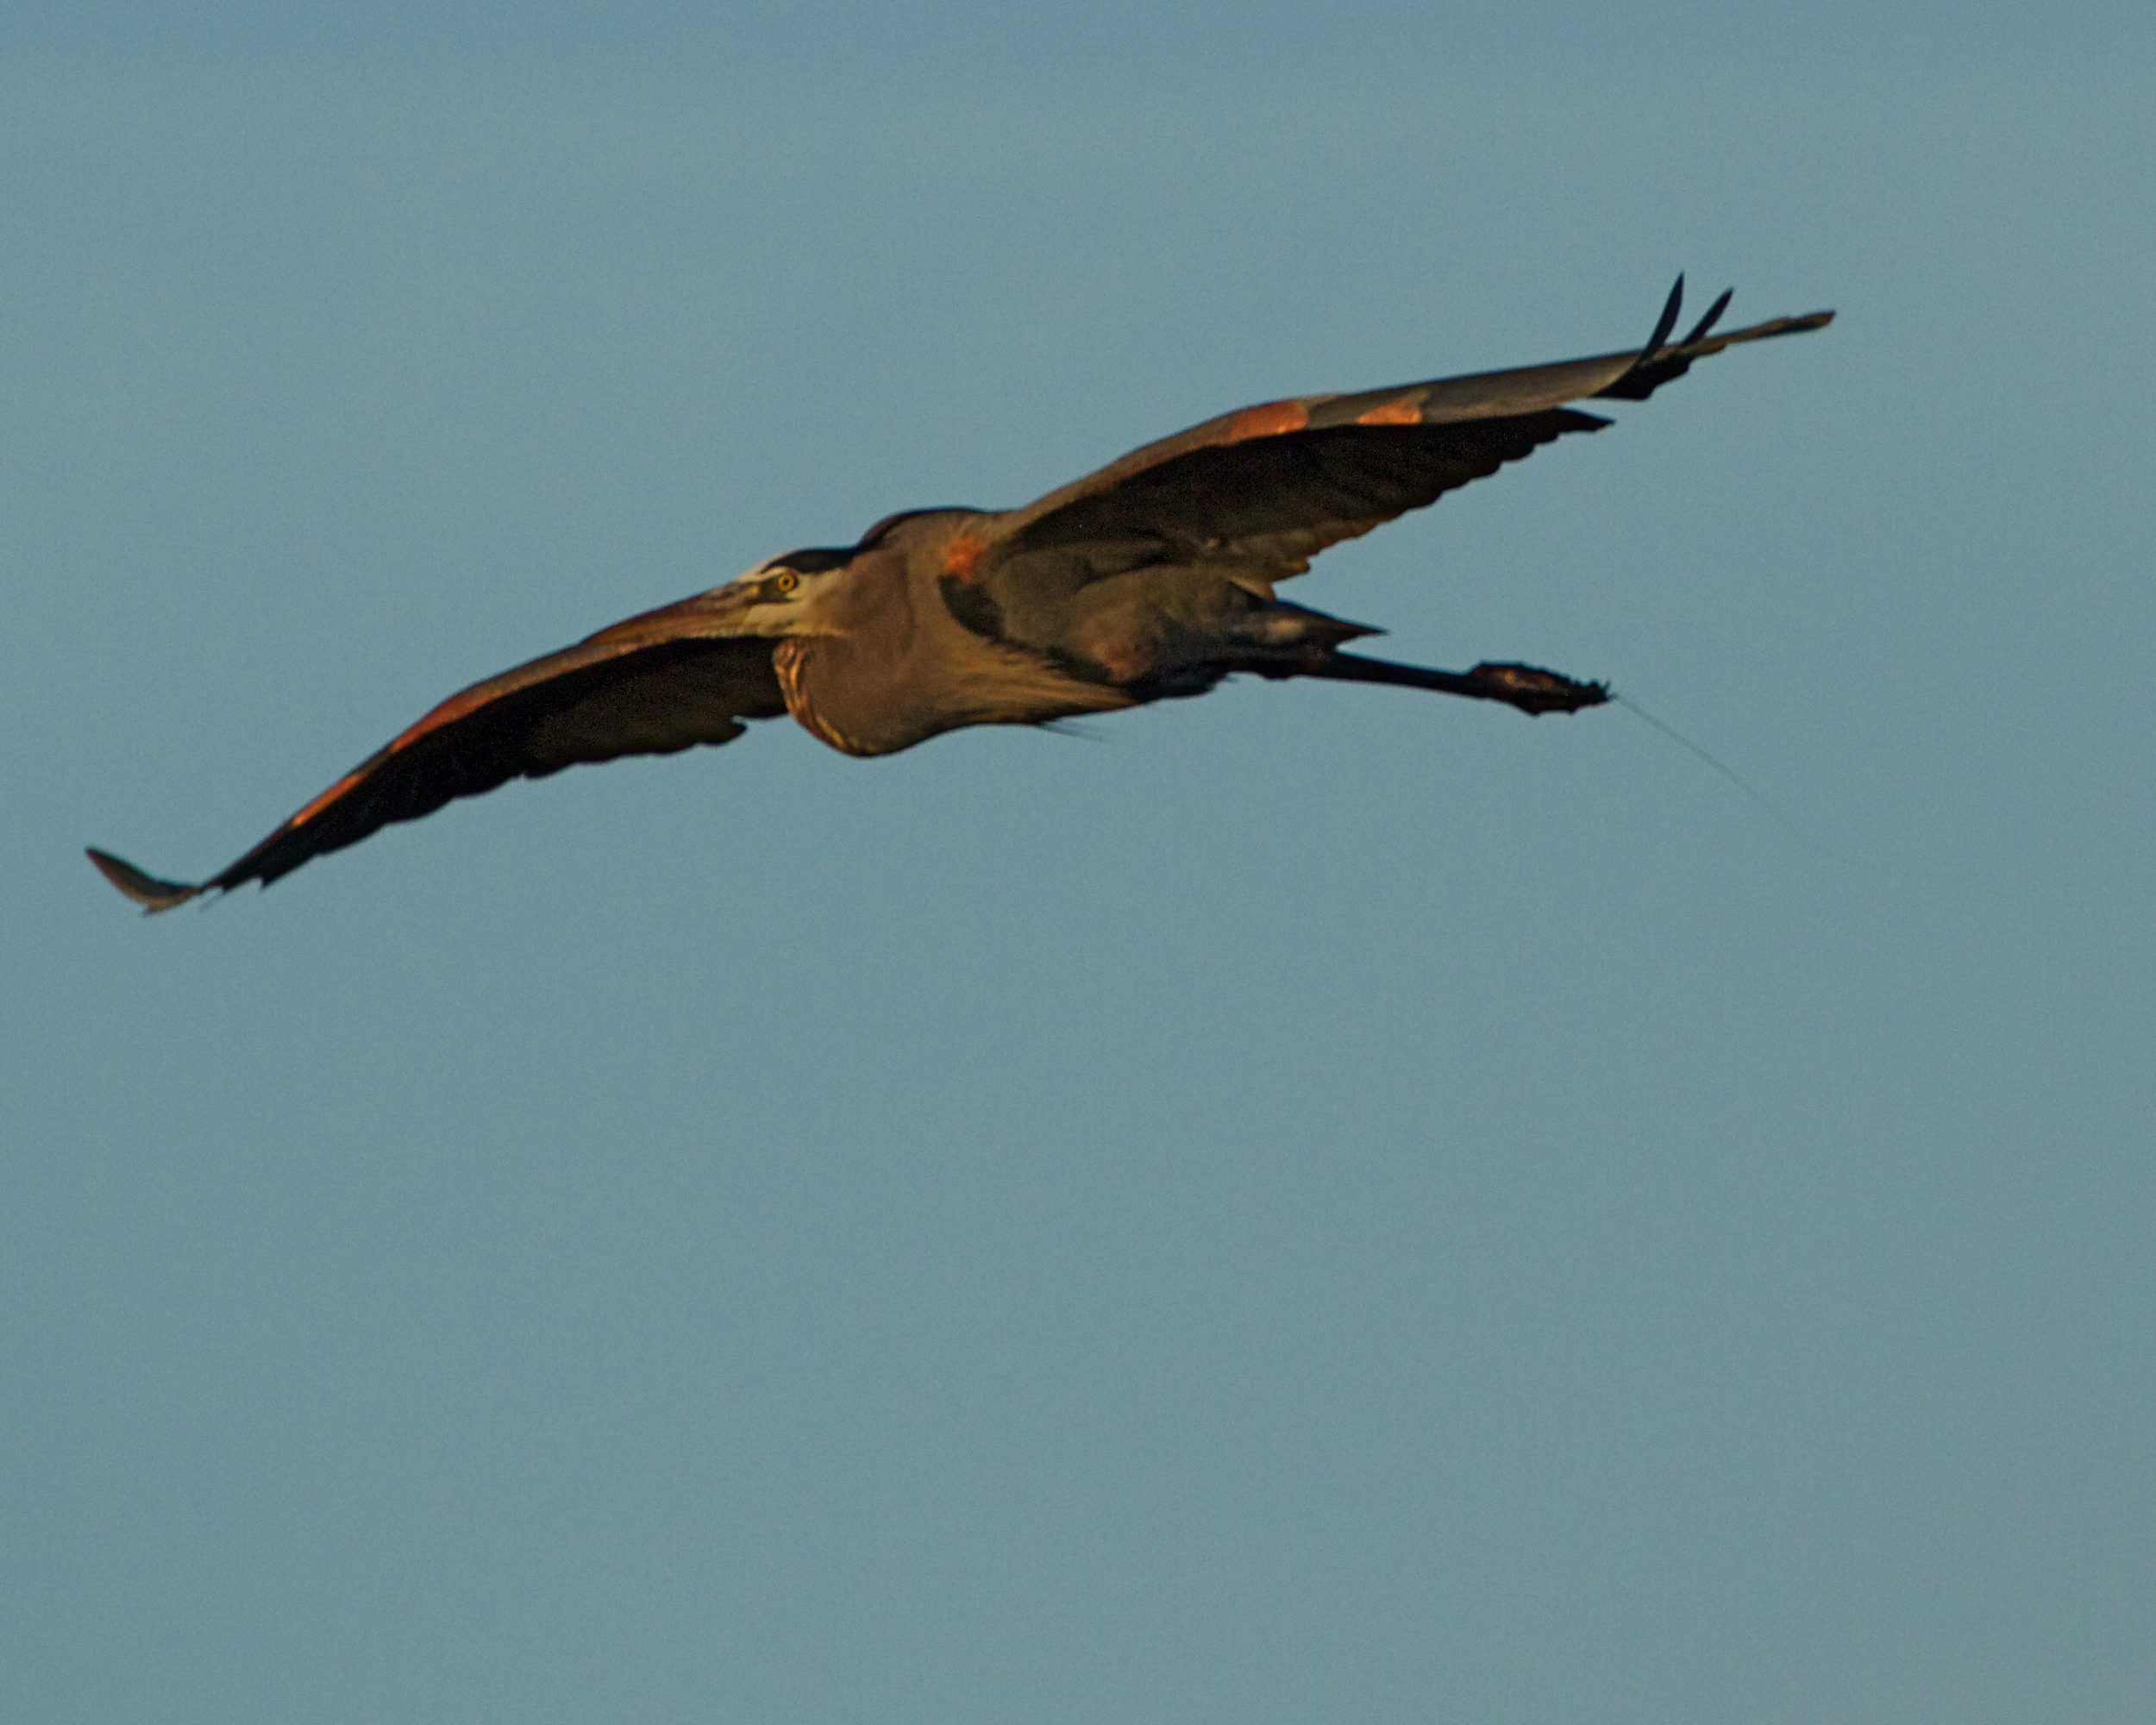 The Patriarch of the Broward, Old Man River the Great Blue Heron spreads his massive wings.